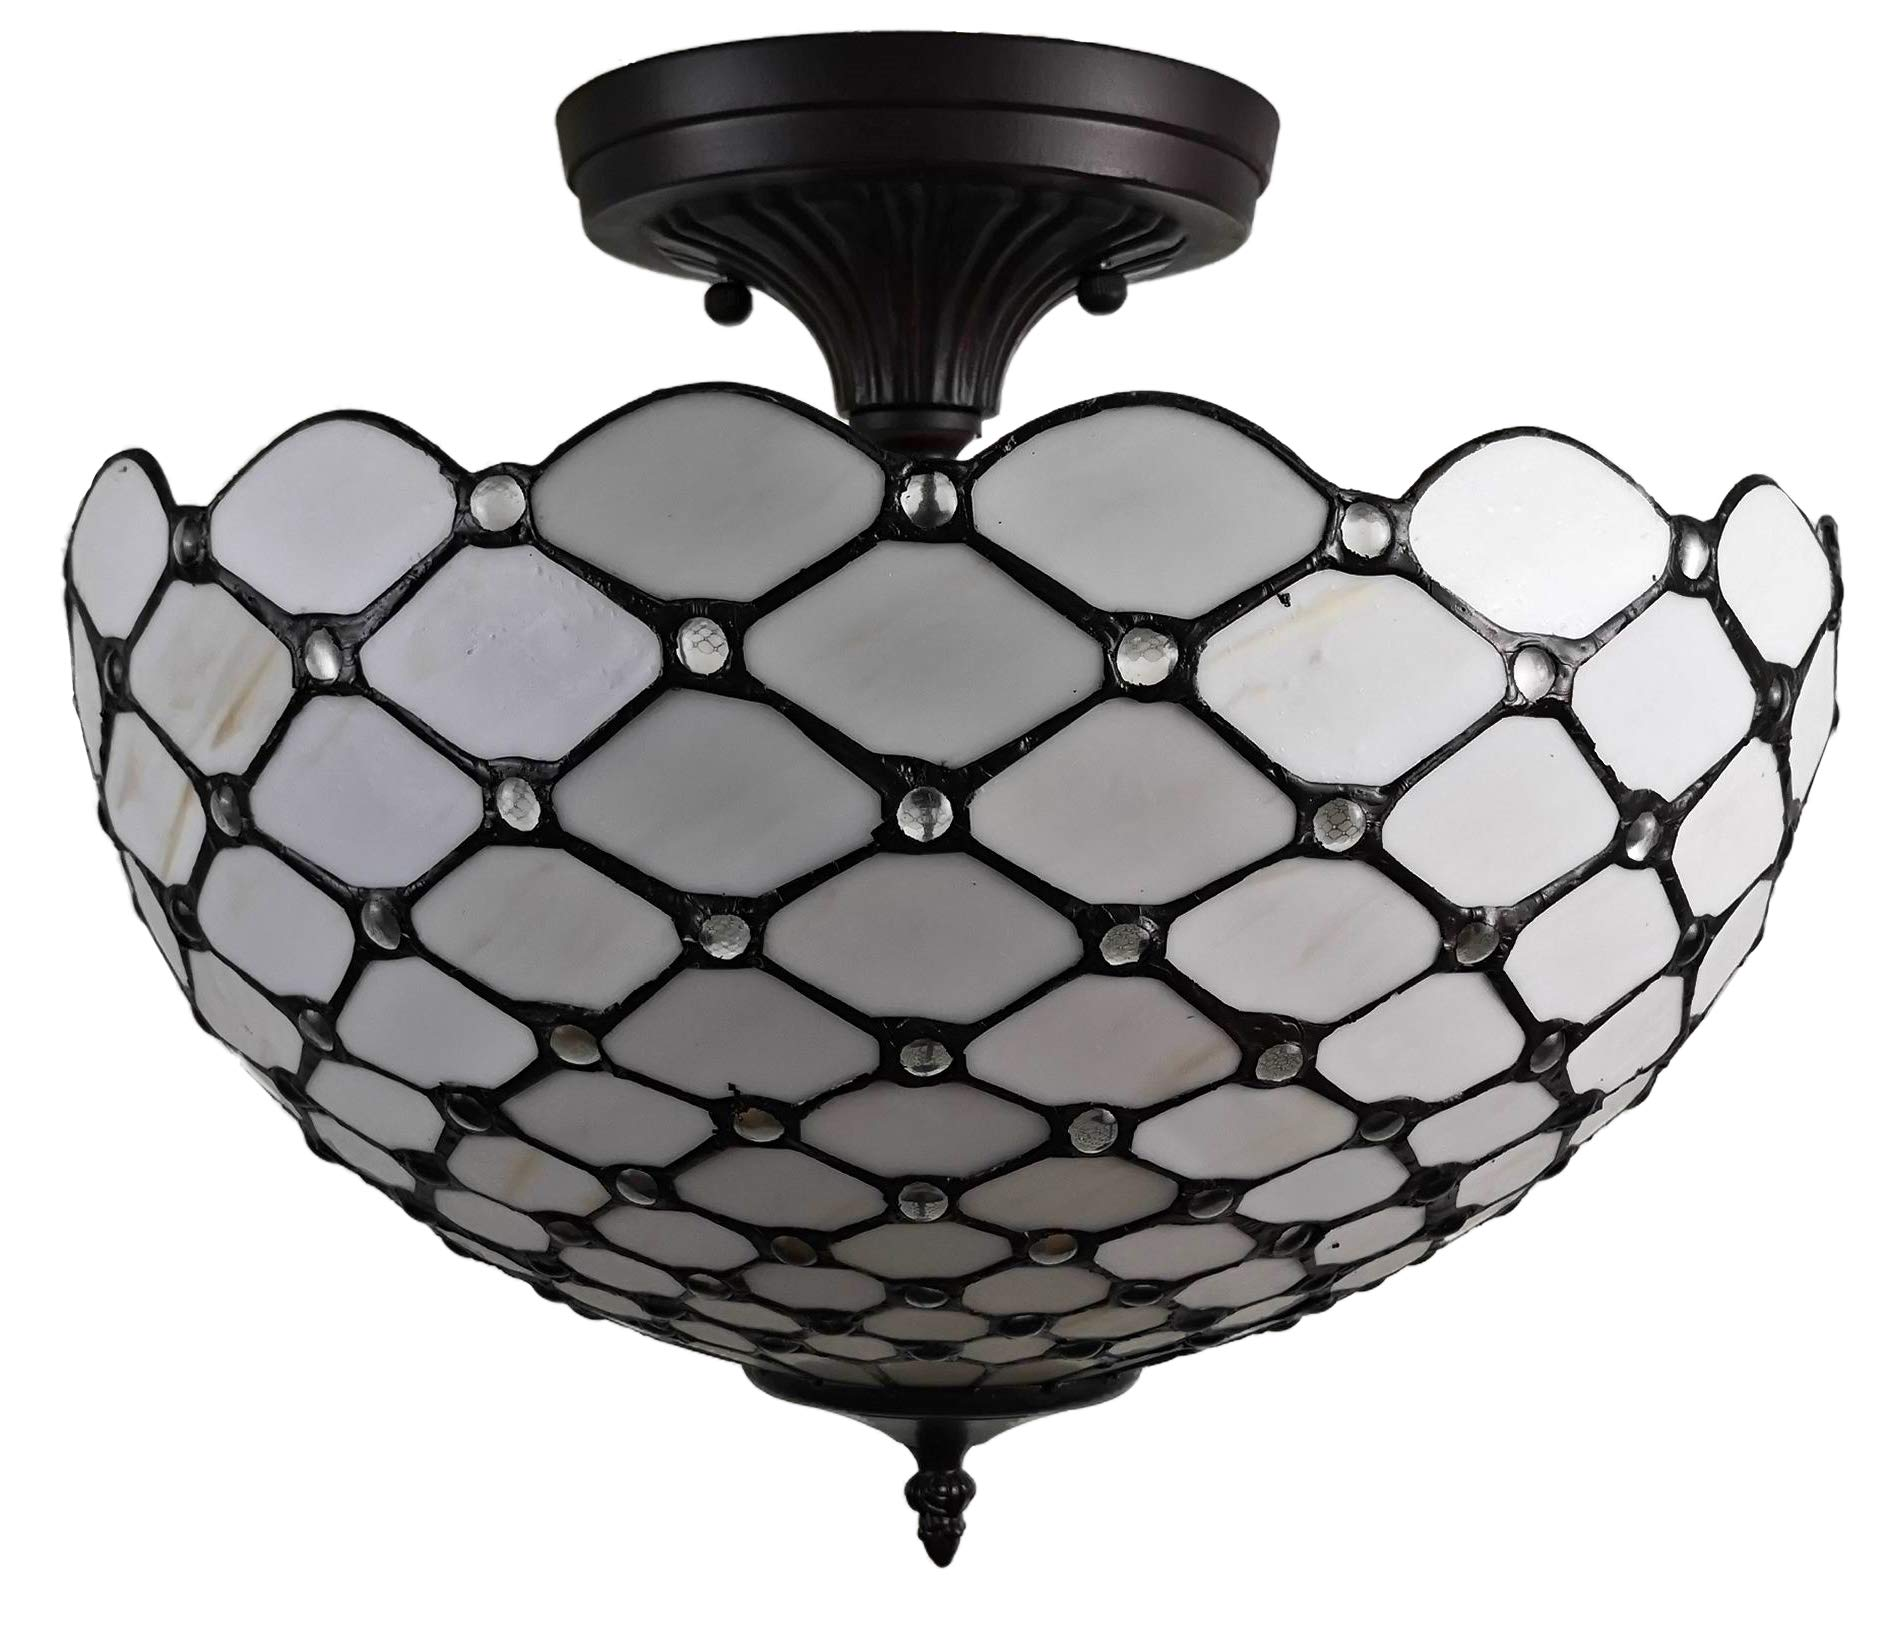 Modern Ceiling Light Fixture for Dining Room Kitchen Bedroom with Satin Etched Cased Opal Glass Shade CO-Z 3-Light Semi Flush Mount Nickel Finish Mini Chandelier